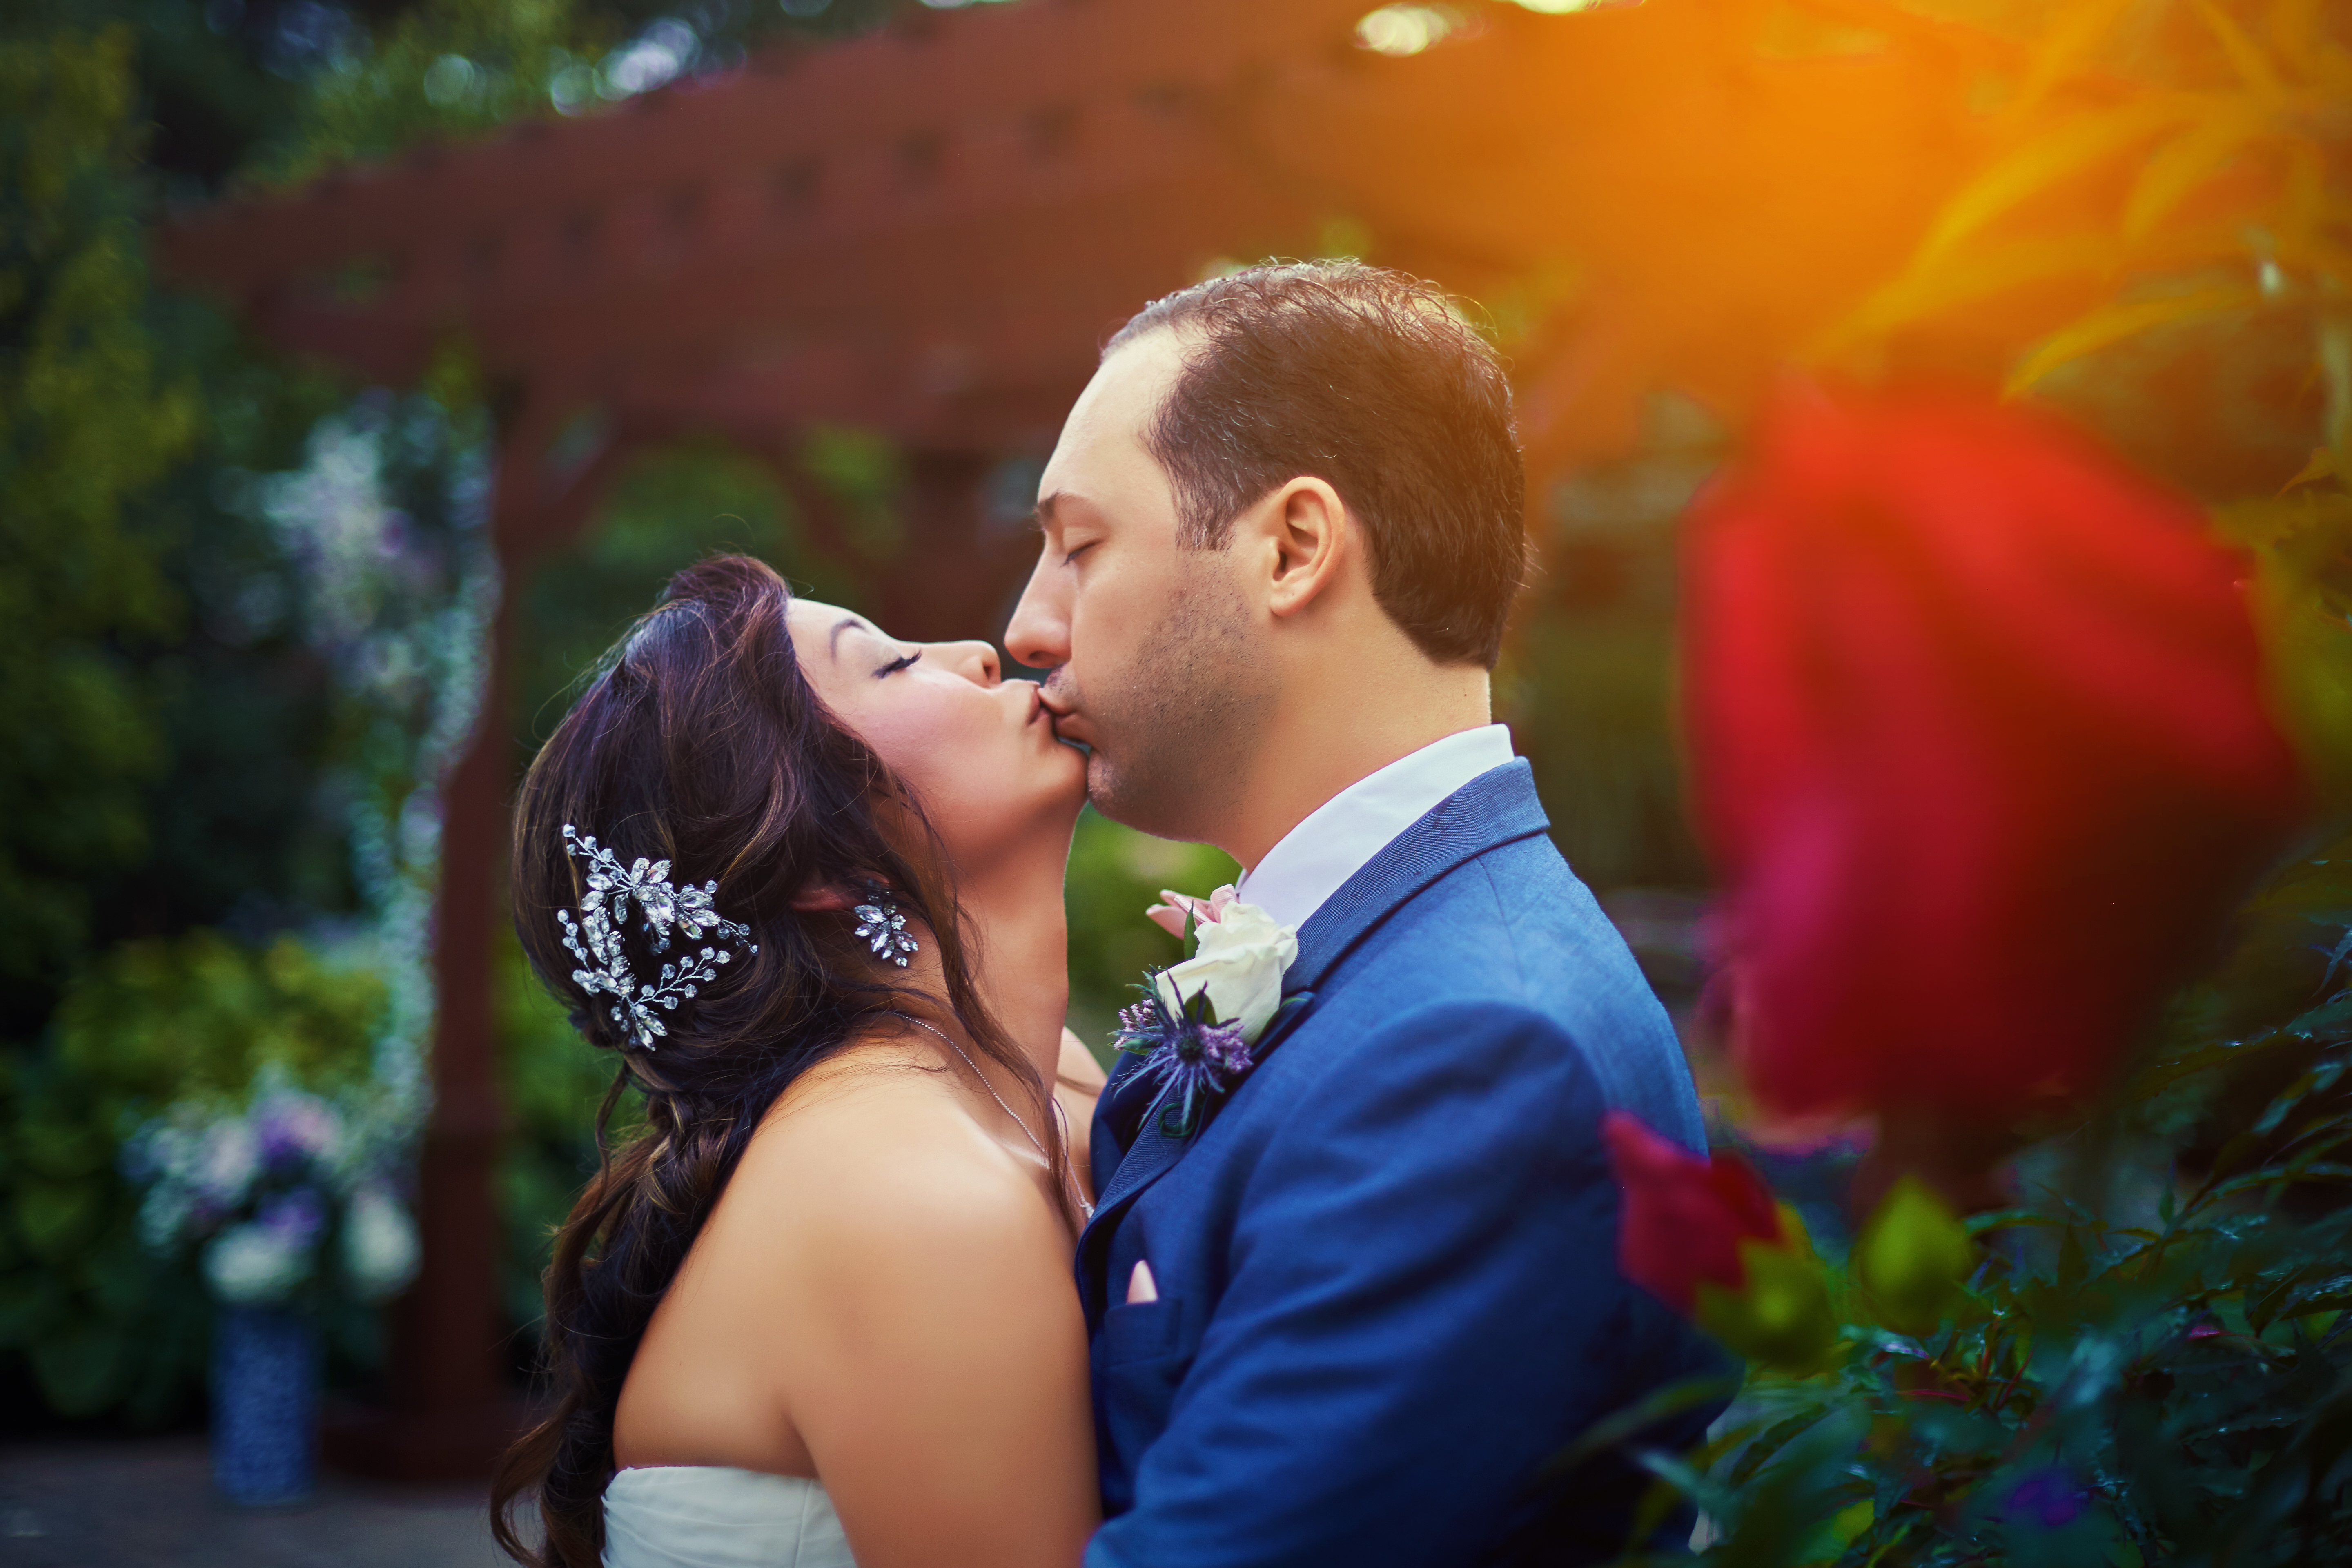 best wedding videography 2018, best wedding videography 2019, best wedding videography 2020, best wedding videography 2021, fashion wedding videography, ct videography, retro wedding videography, wedding videography images, western wedding videography, boston engagement, rude wedding videography, wedding couple videography, wedding videography awards, modern wedding videography, mass wedding, famous wedding videography, wedding photo image, wedding planner videography, natural wedding videography, special wedding videography, concept wedding videography, lisa rigby, vermont videography, true wedding videography, vineyard wedding photos, unbelievable wedding photos, ithaca wedding videography, kelly wedding videography, wv wedding videography, your wedding videography, bliss wedding videography, hybrid wedding videography, our wedding photos, wedding videography art, wedding videography design, hartford wedding videography, abstract wedding videography, popular wedding photos, family portraits boston ma, photoshoot boston ma, independent wedding videography, alex wedding videography, first wedding videography prices, wedding photo design, contemporary wedding photos, artsy wedding photos, wedding knot videography, love wedding videography, worlds best wedding videography, dreamy wedding videography, videography in wedding, wedding videography outfit, boston videography locations, love wedding photos, ben wedding videography, suggested wedding photos, indie wedding videography, b&w wedding videography, wedding videography themes, wedding videography vintage, chatham wedding videography,